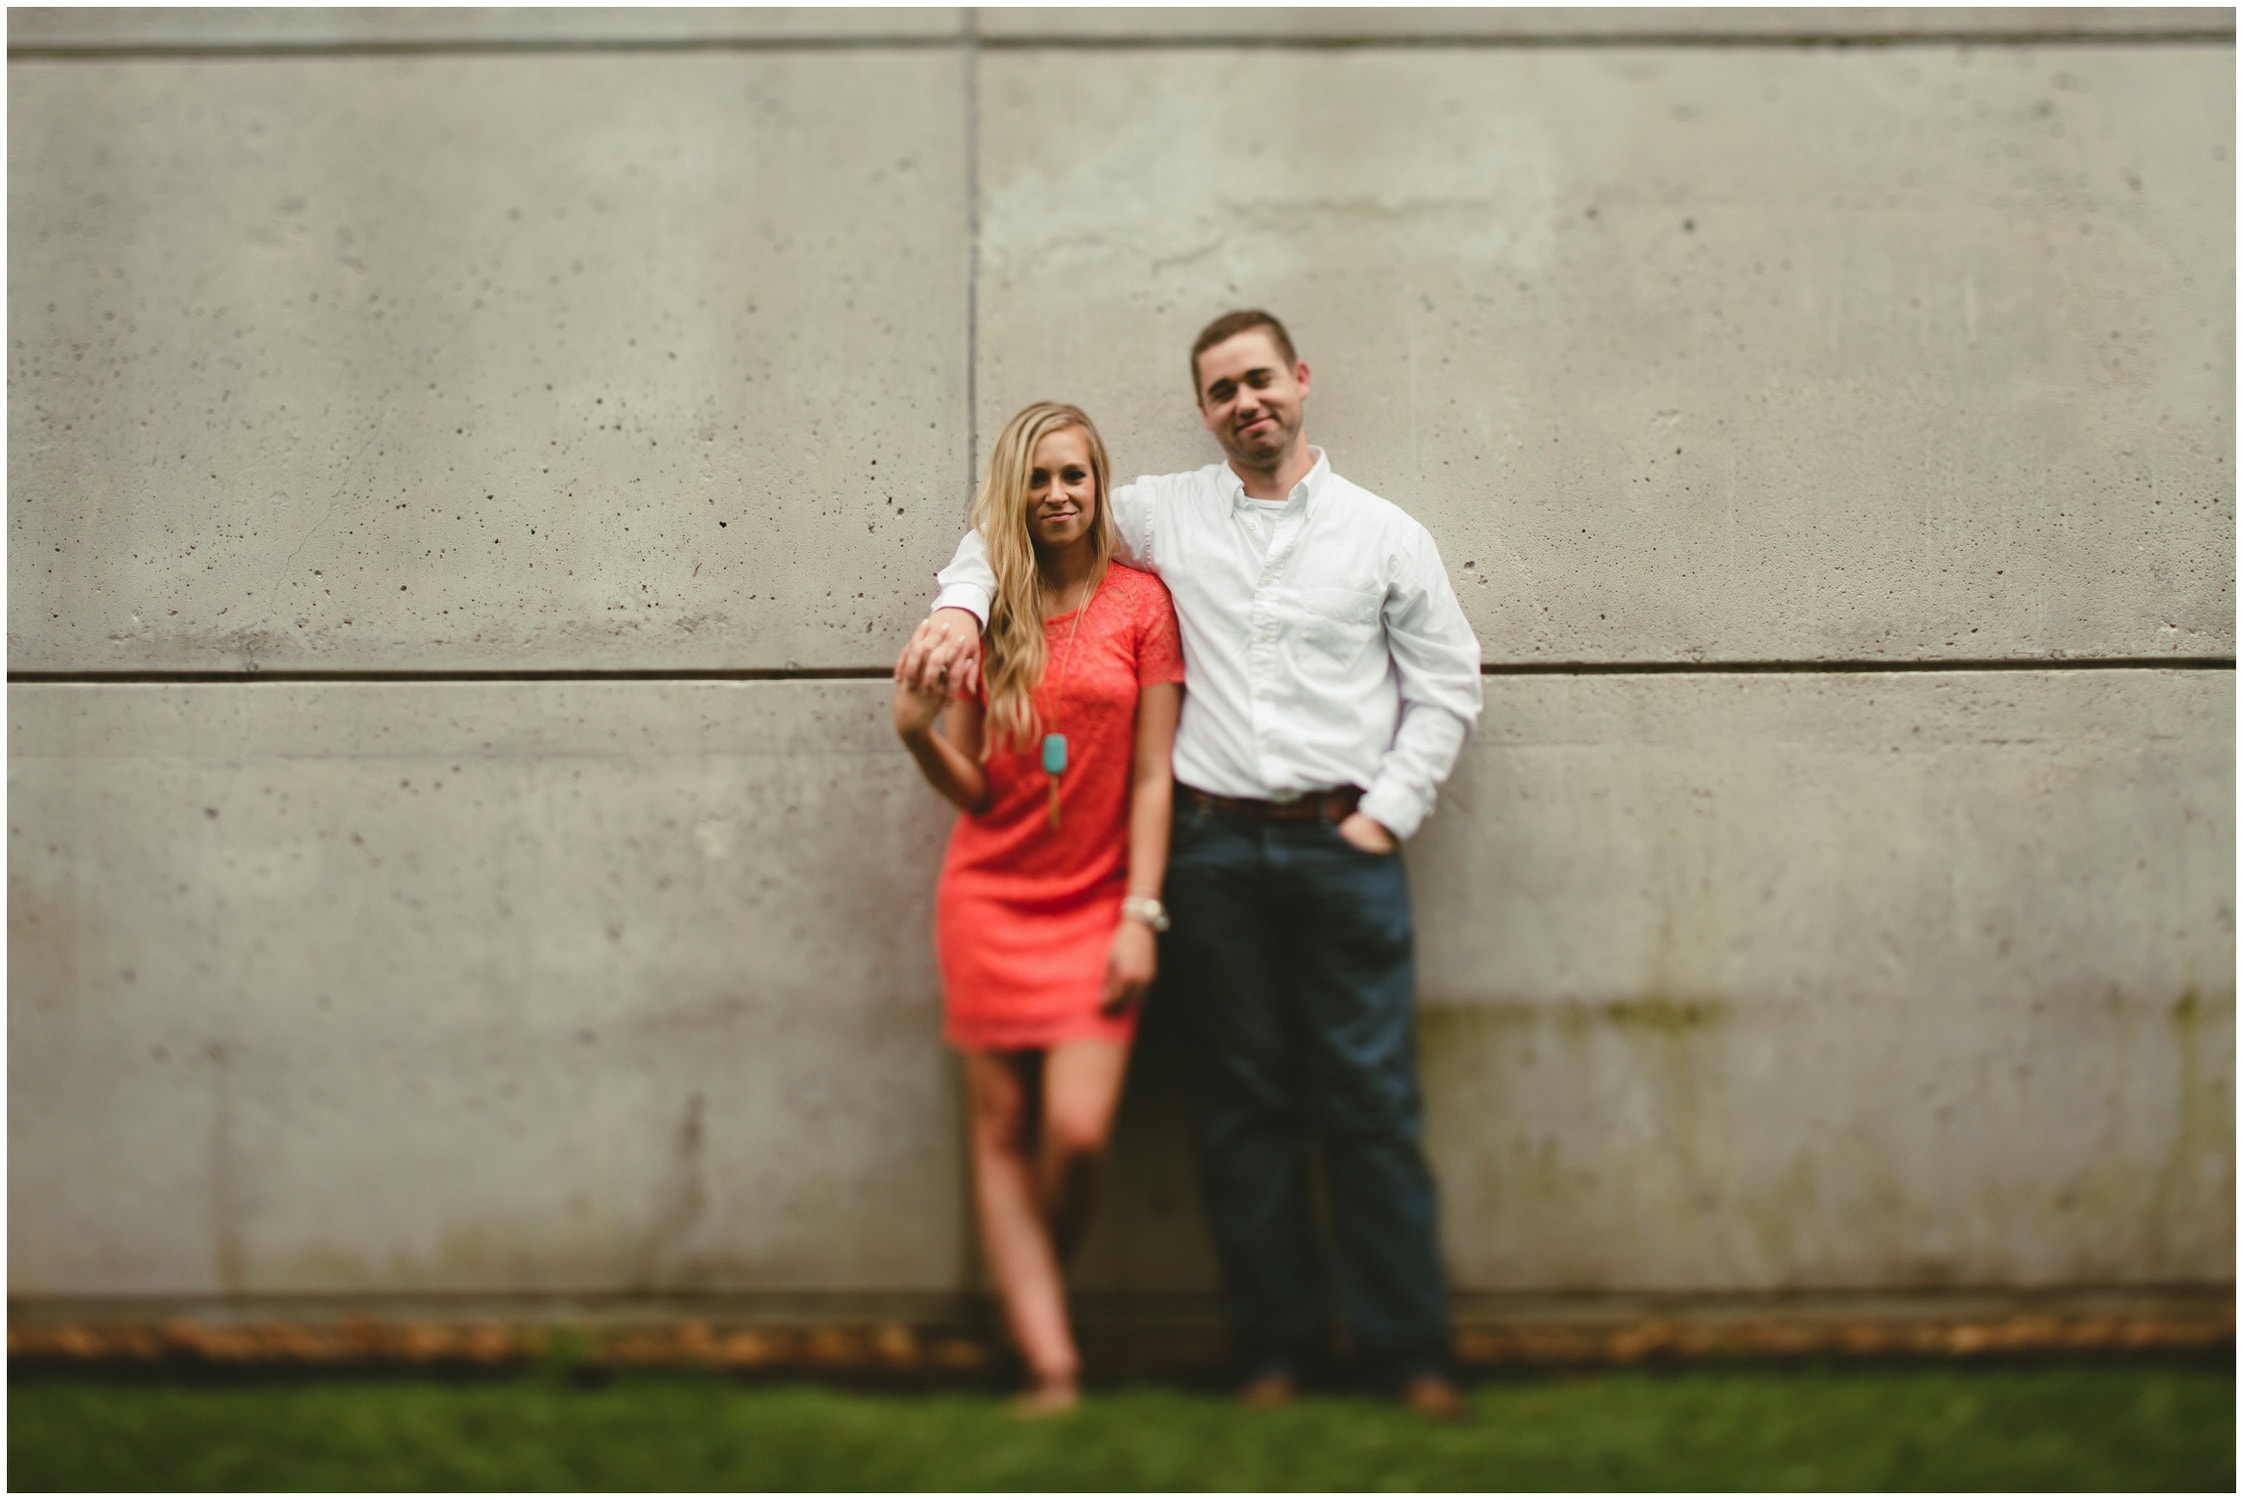 amandamichael_engagements_22_blogstomped